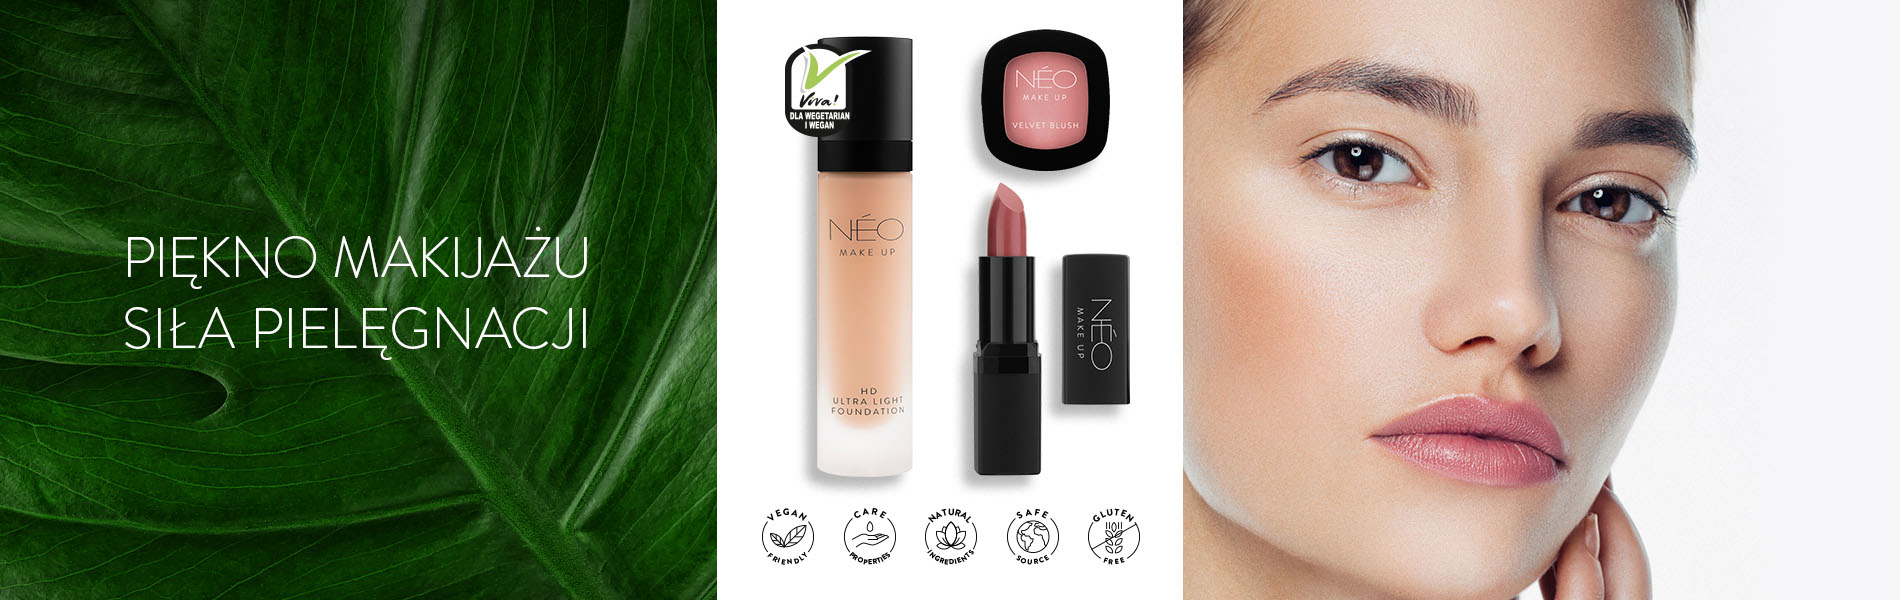 neo_make_up_piekno_makijazu